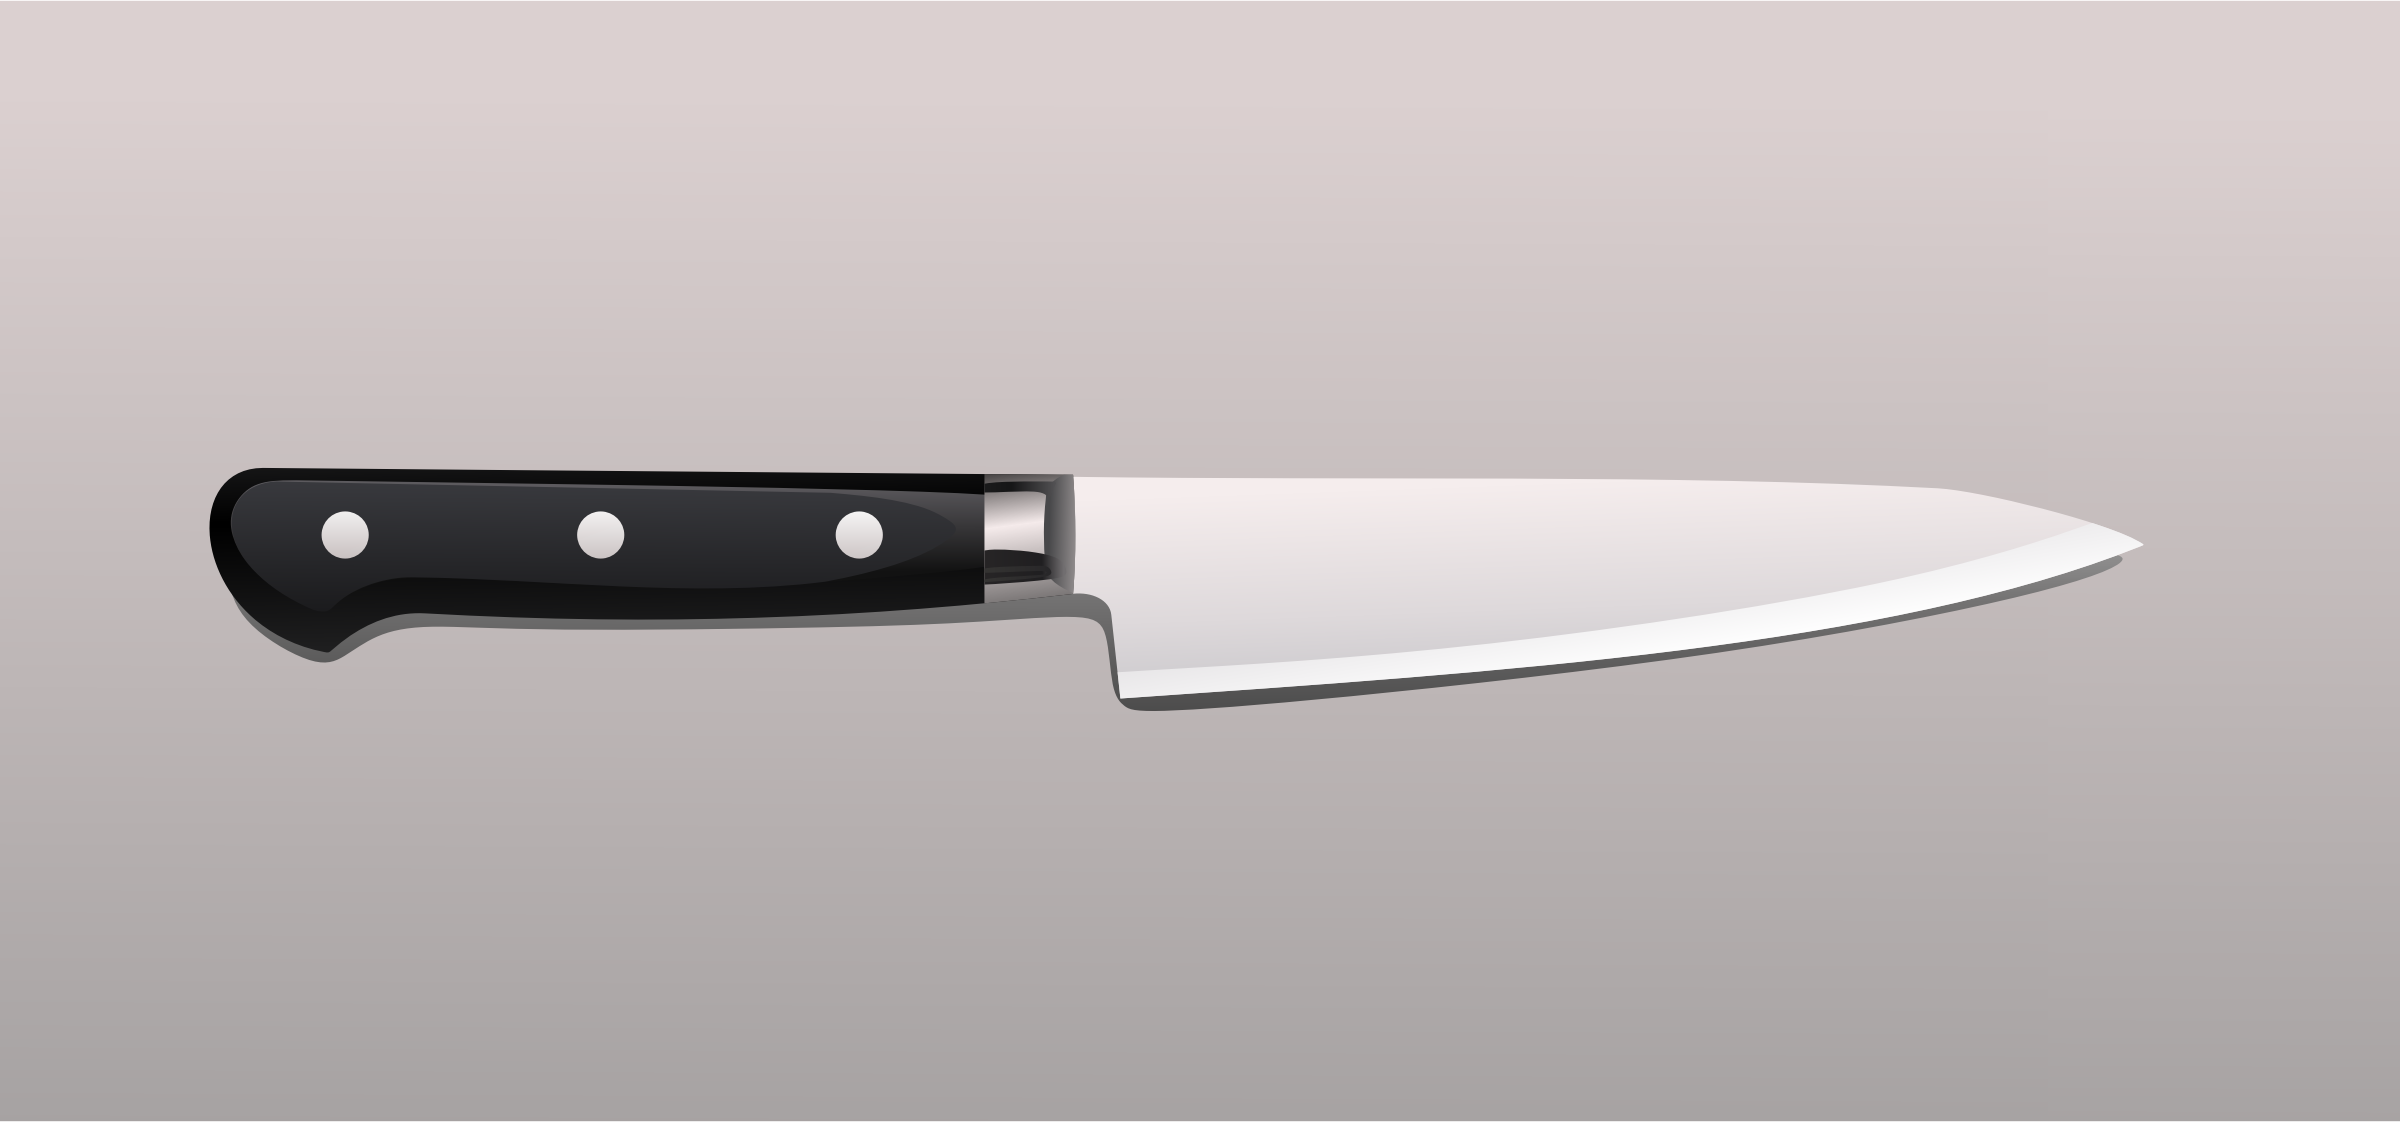 Realistic Kitchen Knife by GDJ